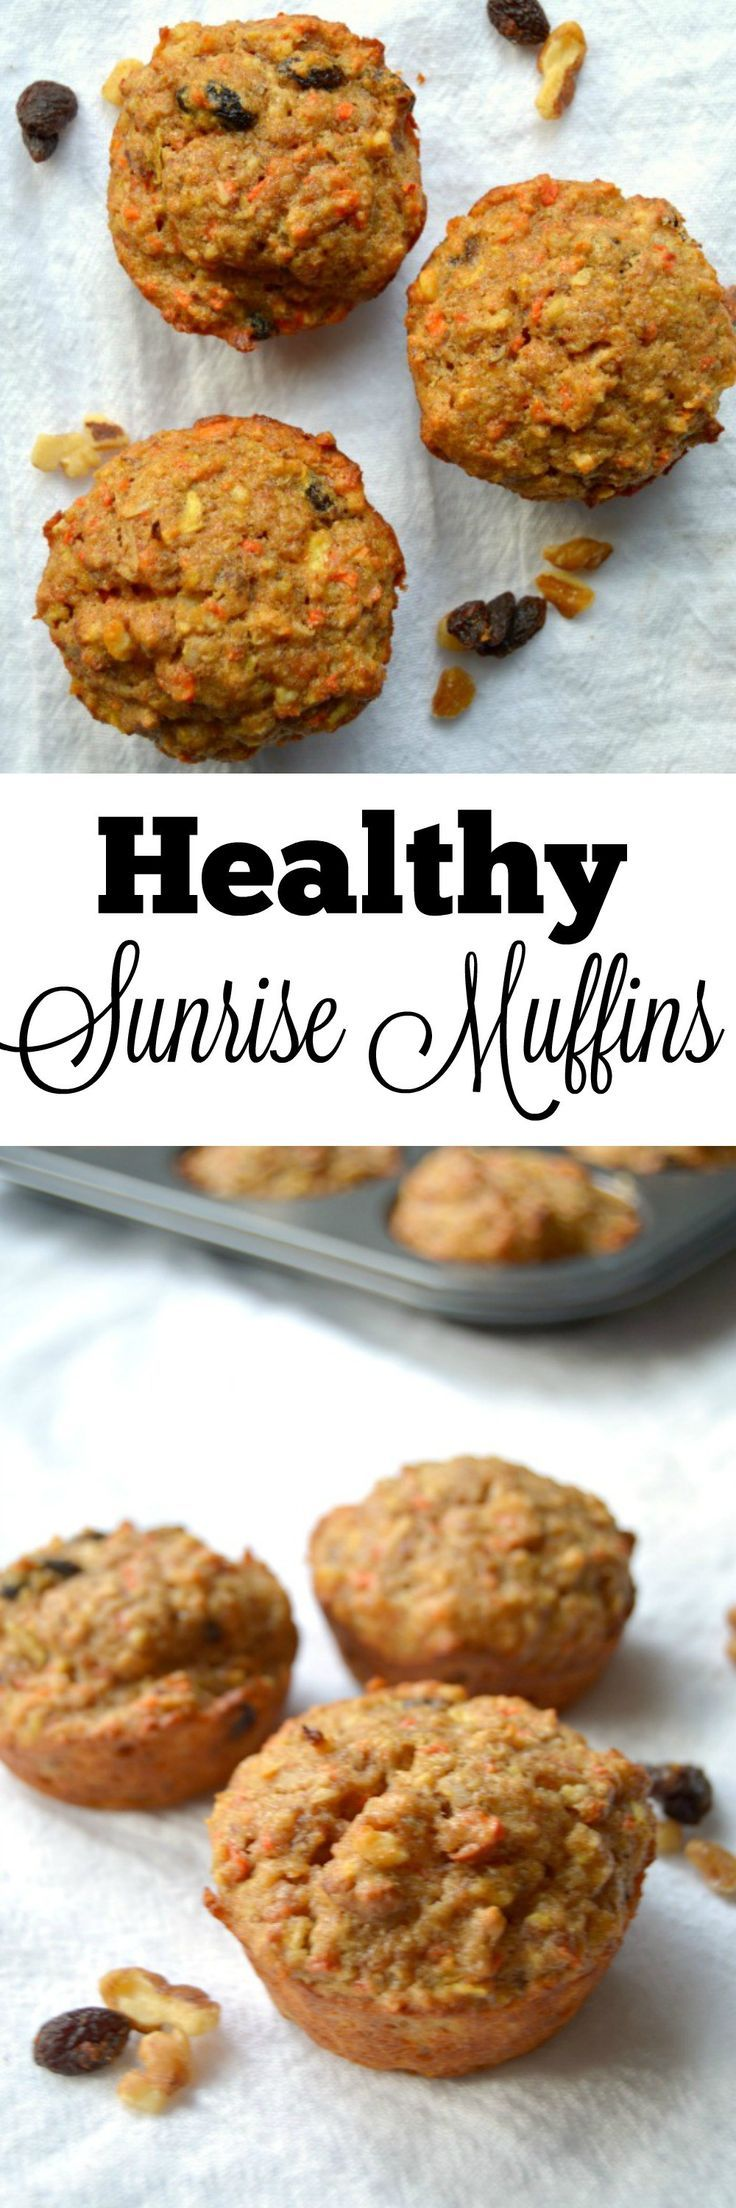 Healthy Sunrise Muffins - These Sunrise Muffins are moist and delicious! They are an amazing healthy breakfast or snack since they are packed with whole grains, fruits and veggies!